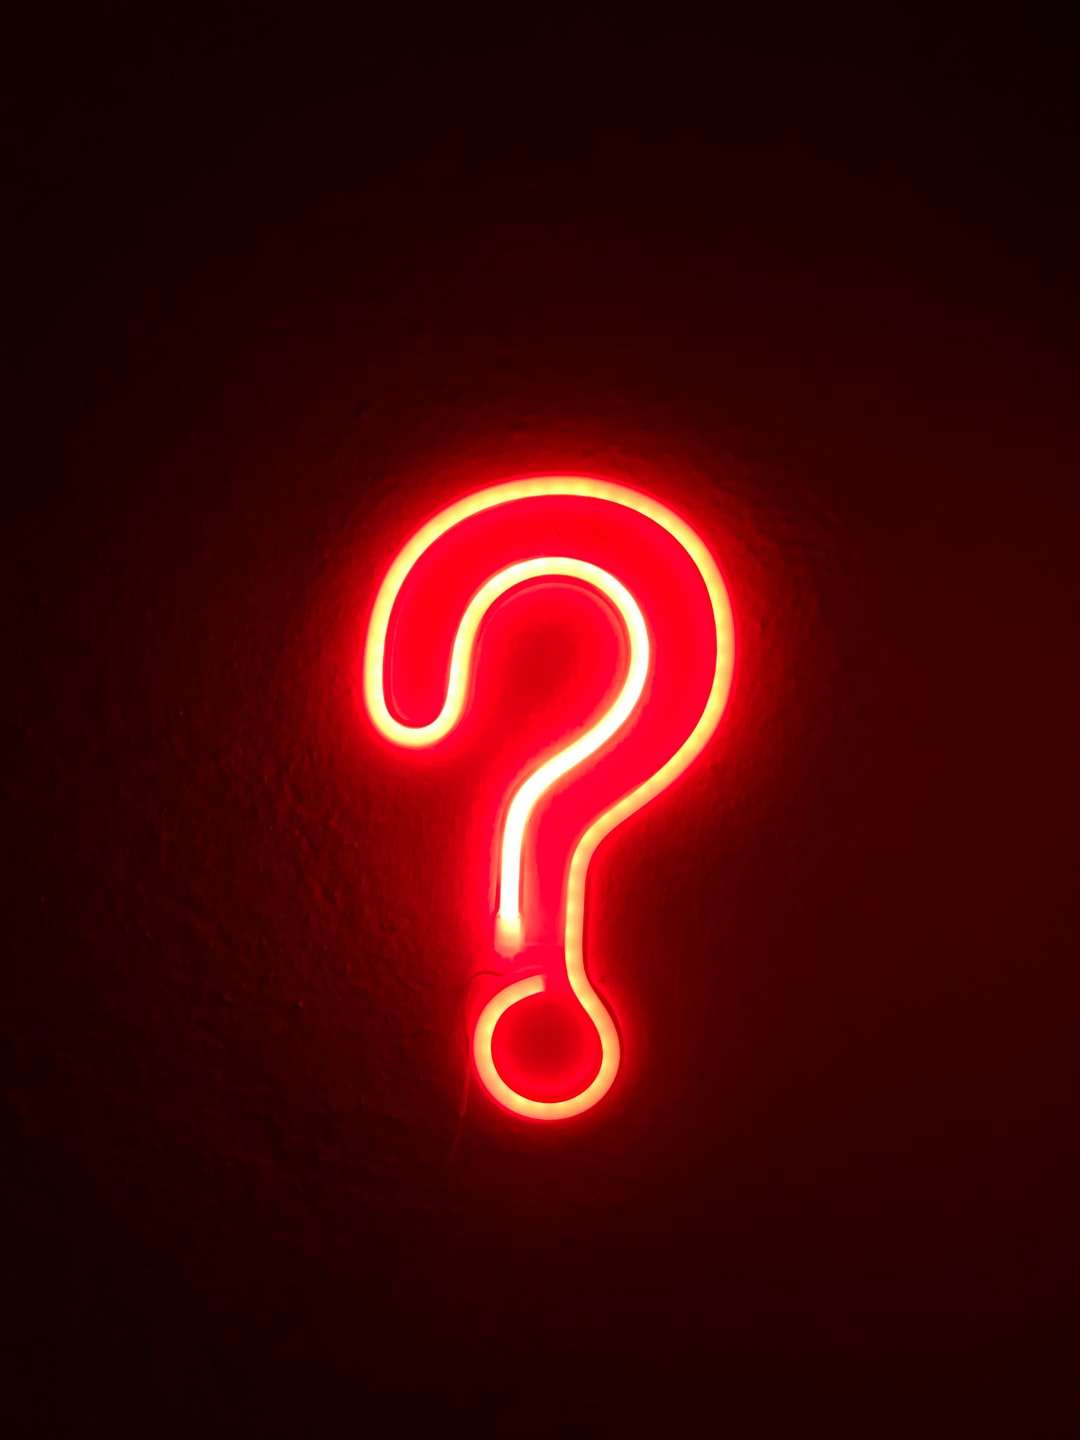 12 Killer Questions That Every SME Owner Must Ask Themselves In 2021